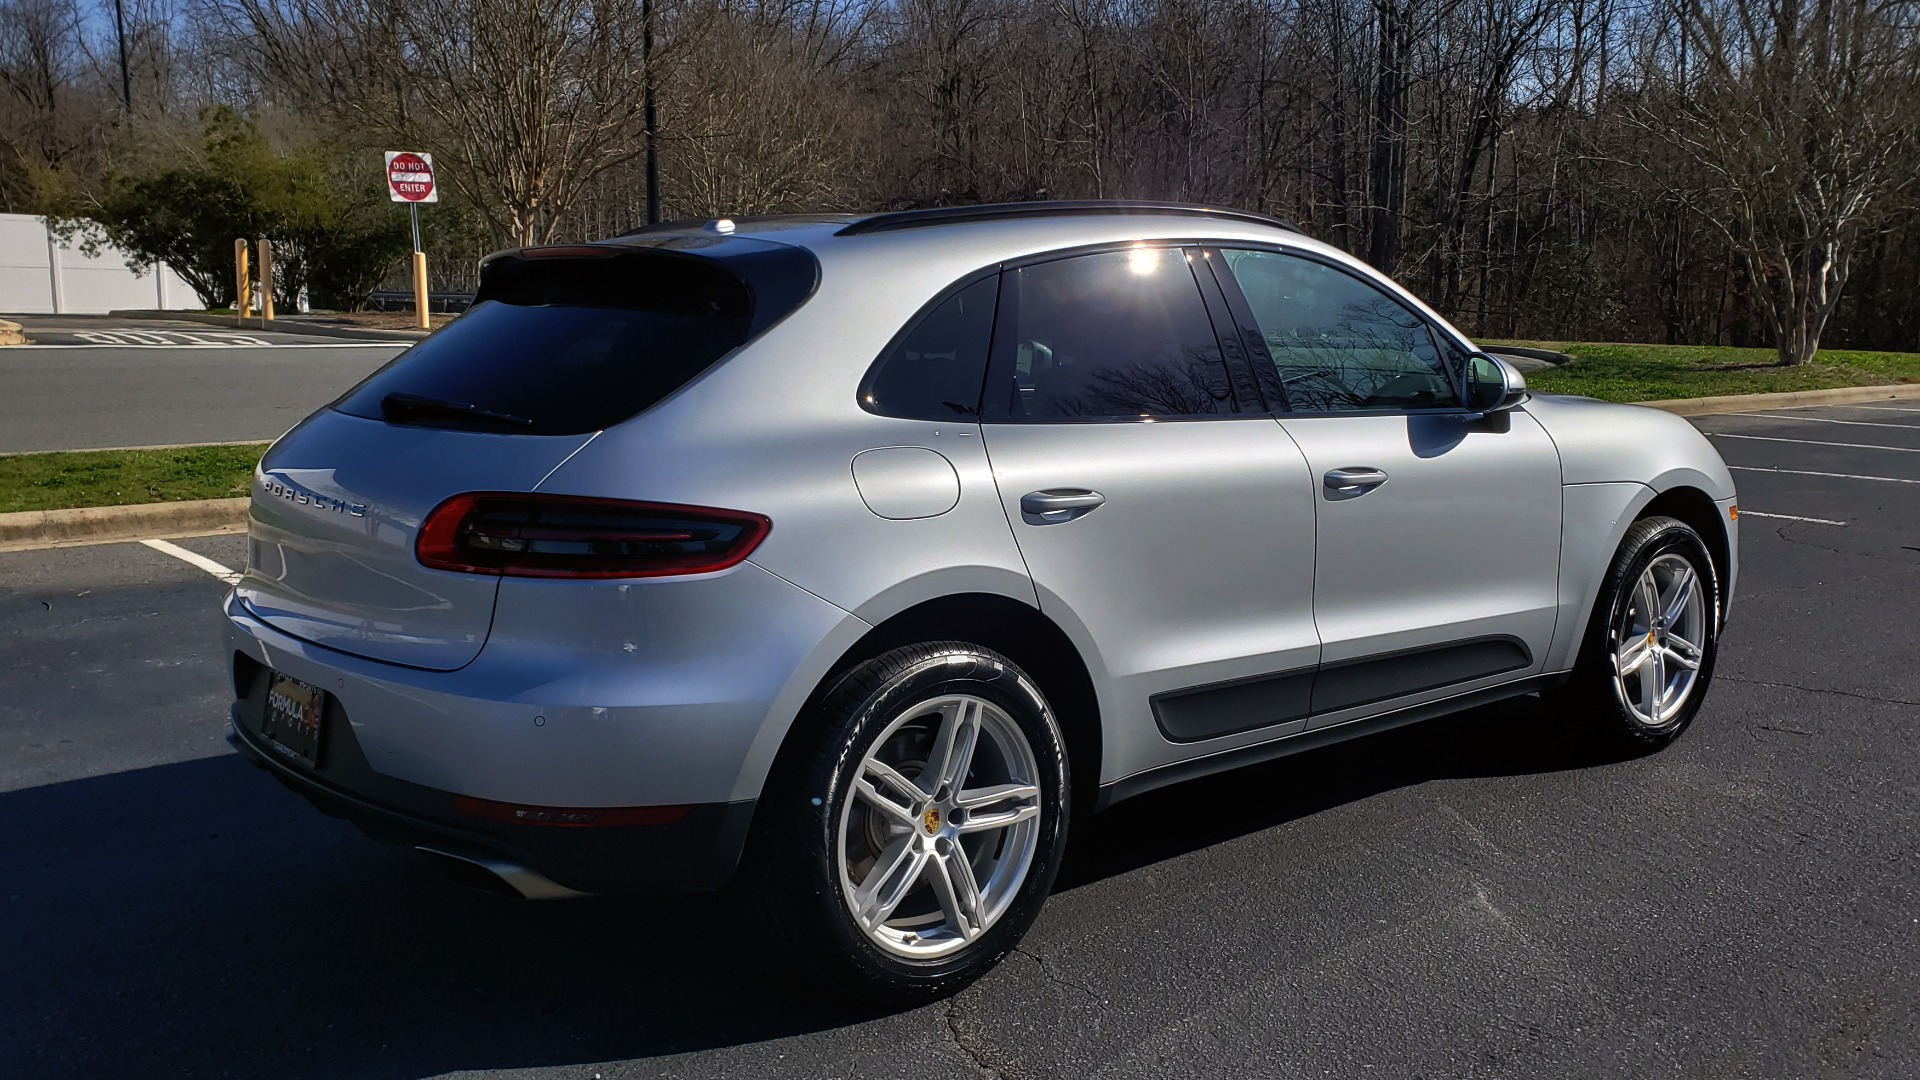 Used 2018 Porsche MACAN AWD / PDK / NAV / PANO-ROOF / BOSE / REARVIEW / LCA for sale Sold at Formula Imports in Charlotte NC 28227 6